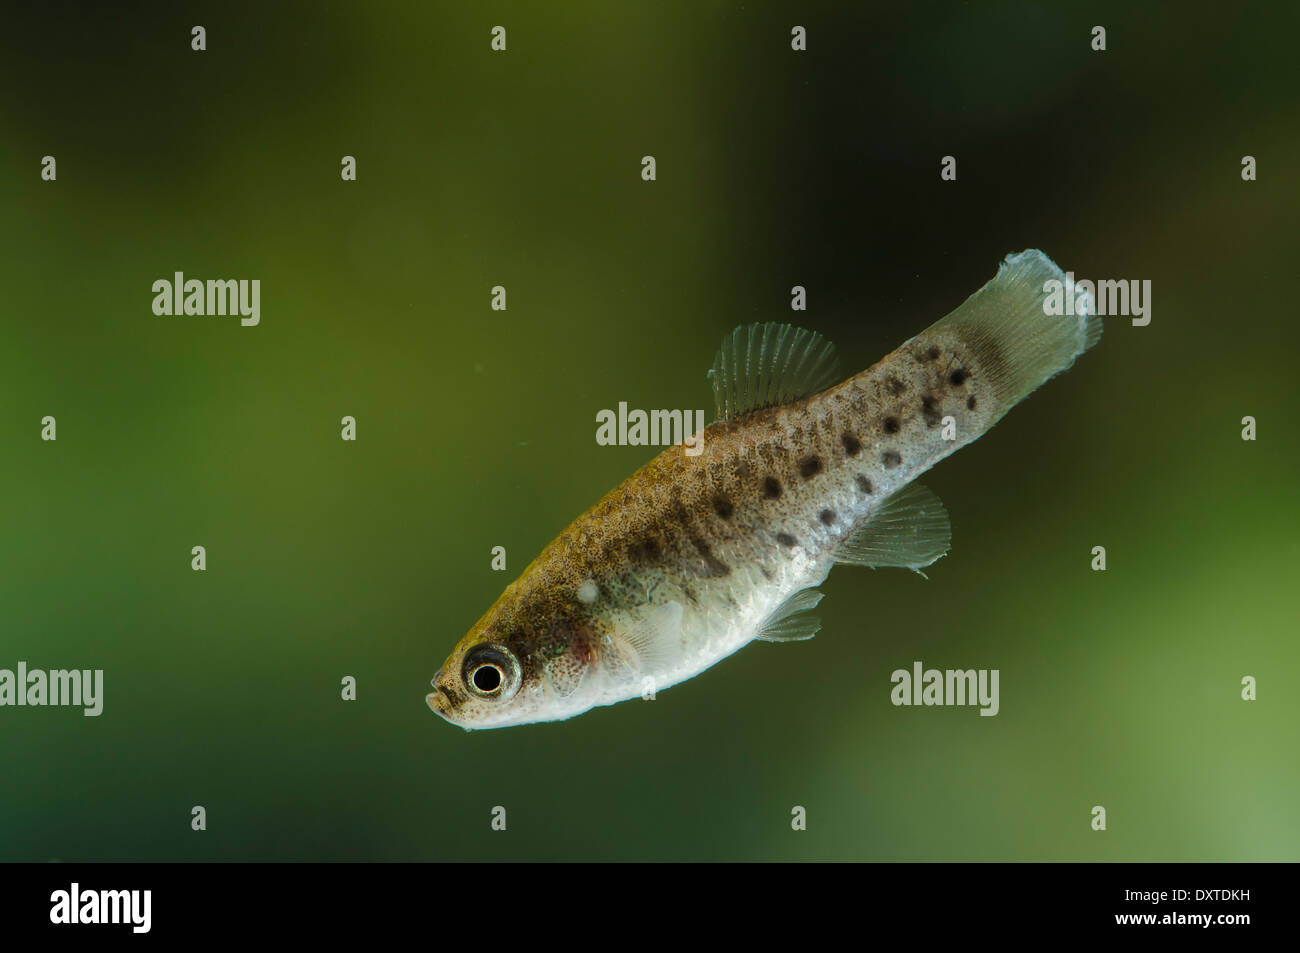 Female of Aphanius iberus, a mosquito larvivorous fish species presently endangered in the Mediterranean since the introduction of the American mosquitofish (Gambusia spp.) in early XXth century, which harms the autochtonous species. - Stock Image